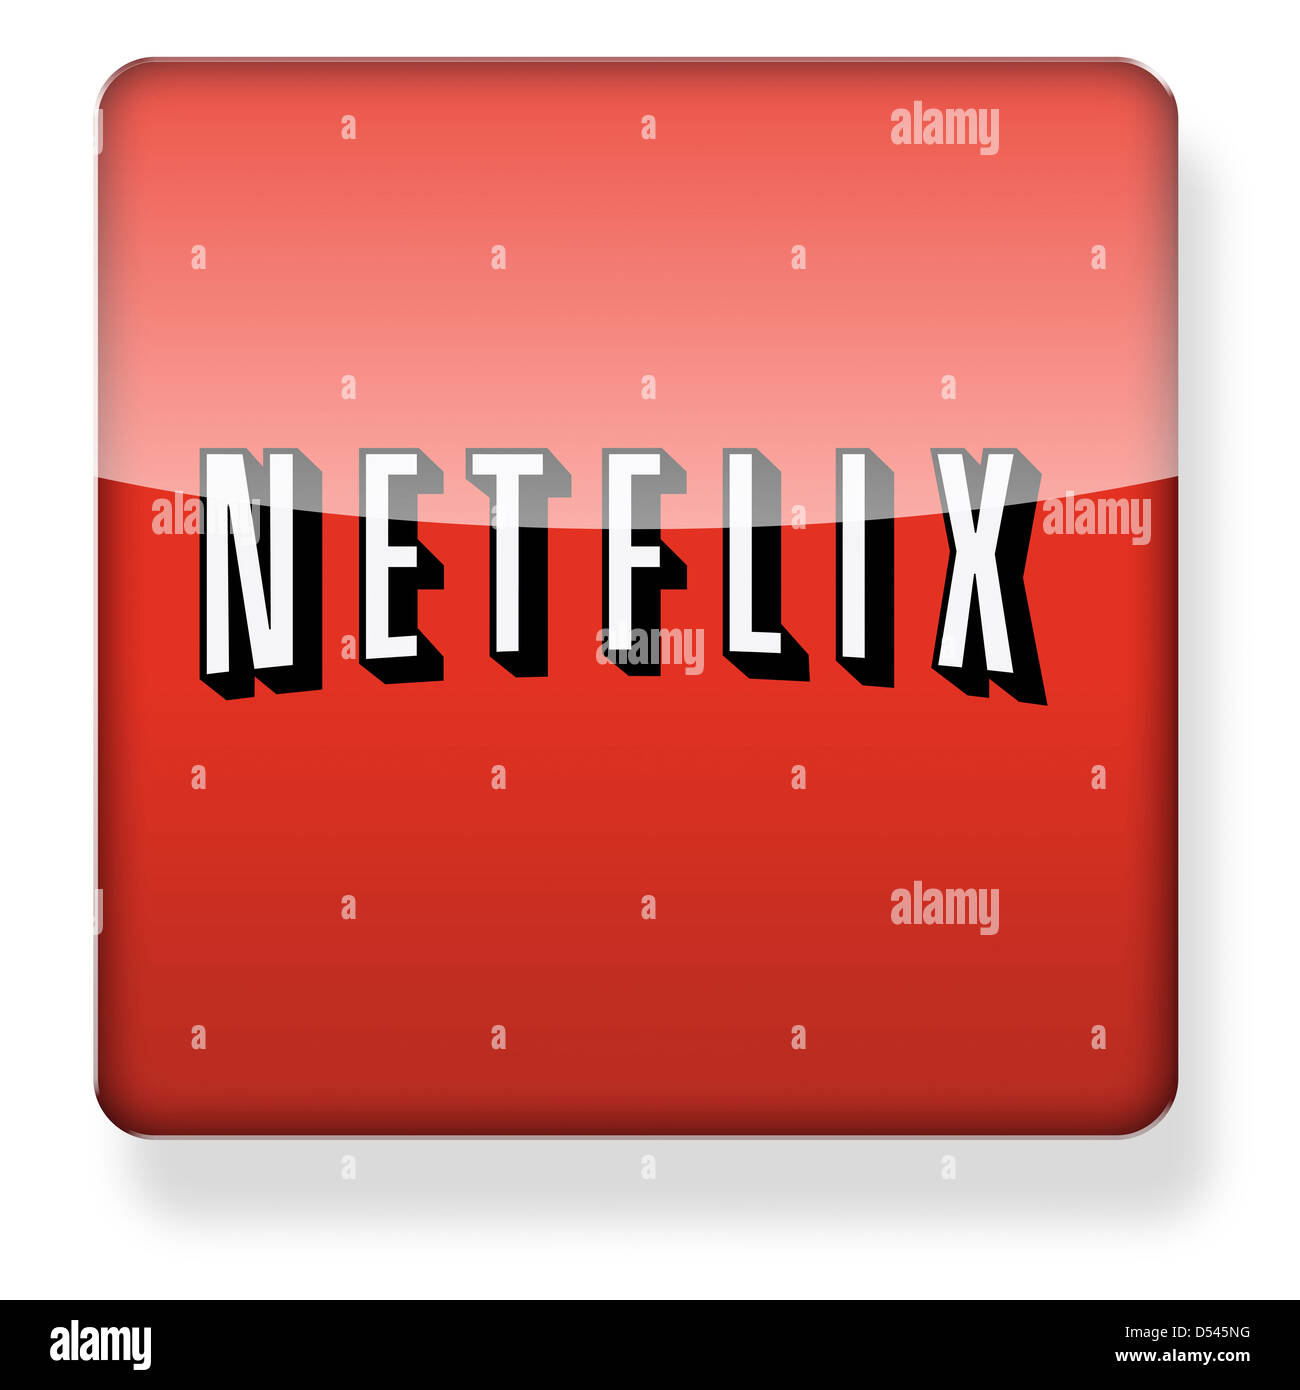 netflix logo as an app icon clipping path included stock